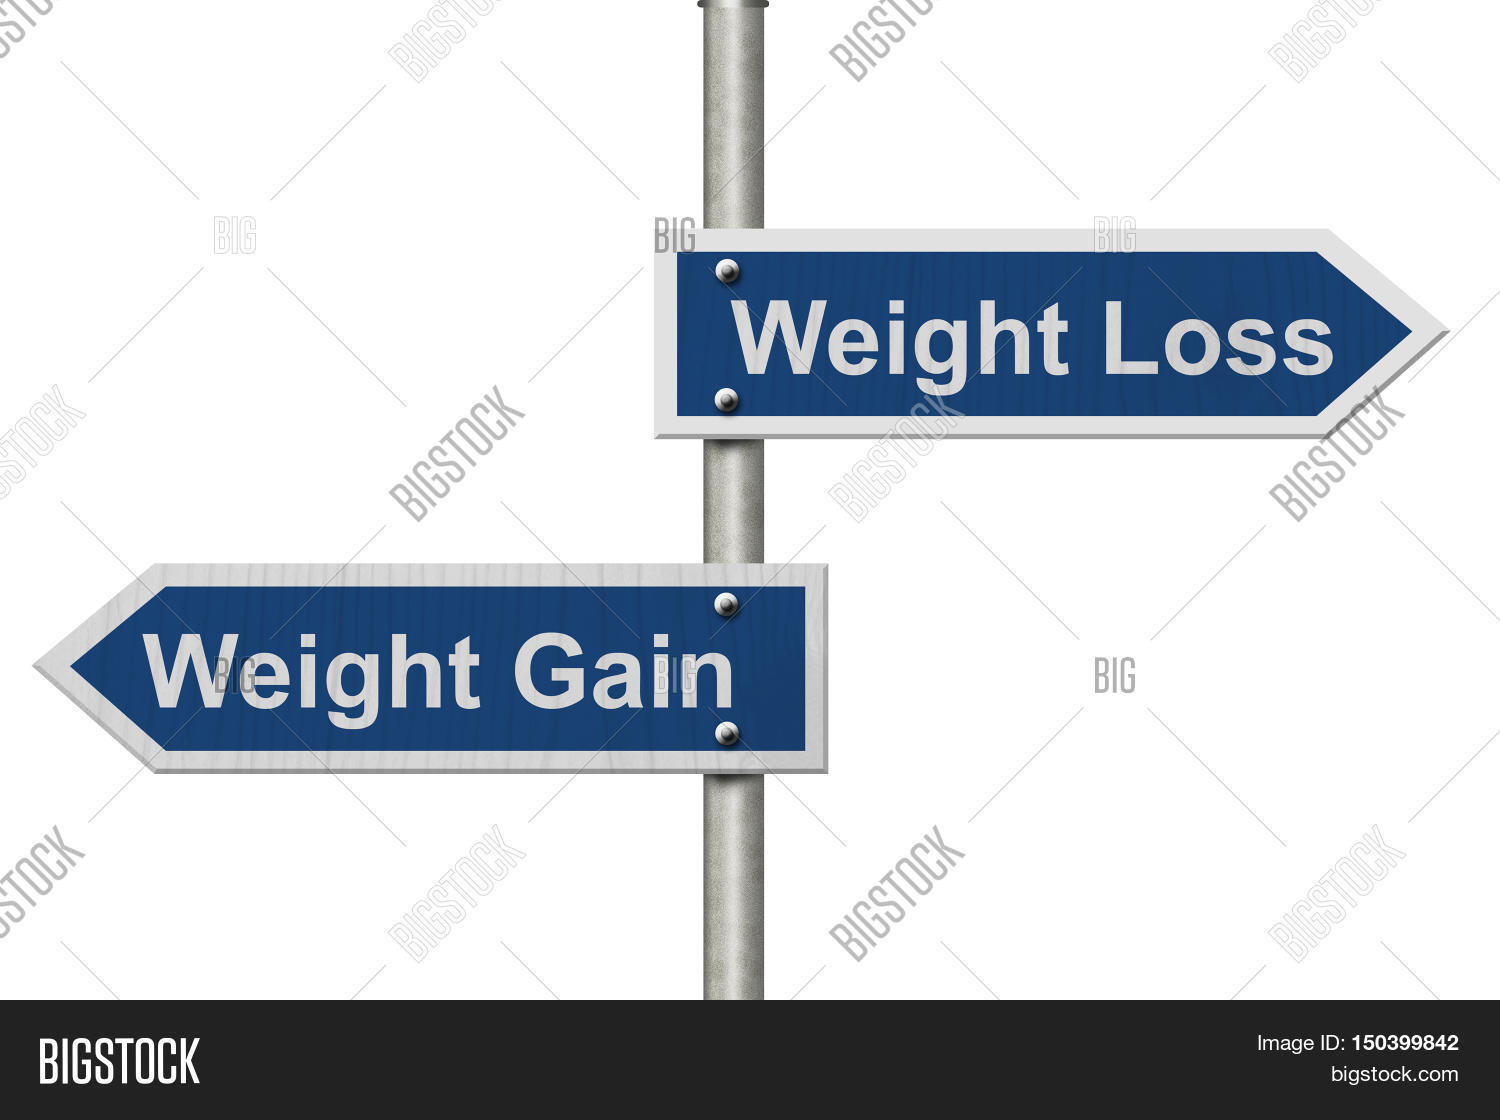 weight loss versus gain two blue road sign with text